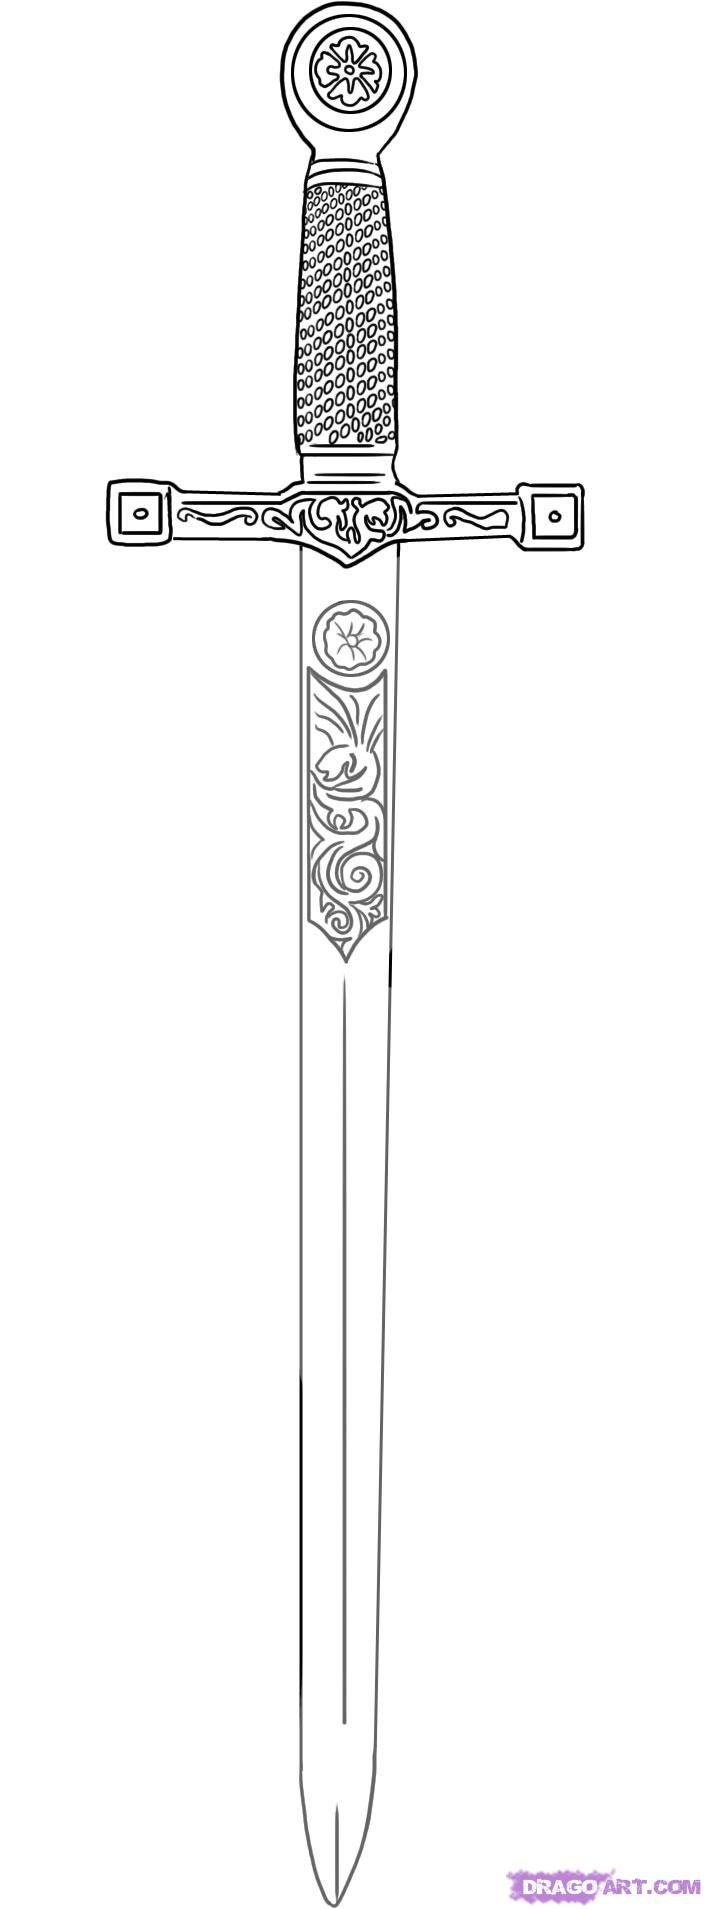 how to draw excalibur sword in